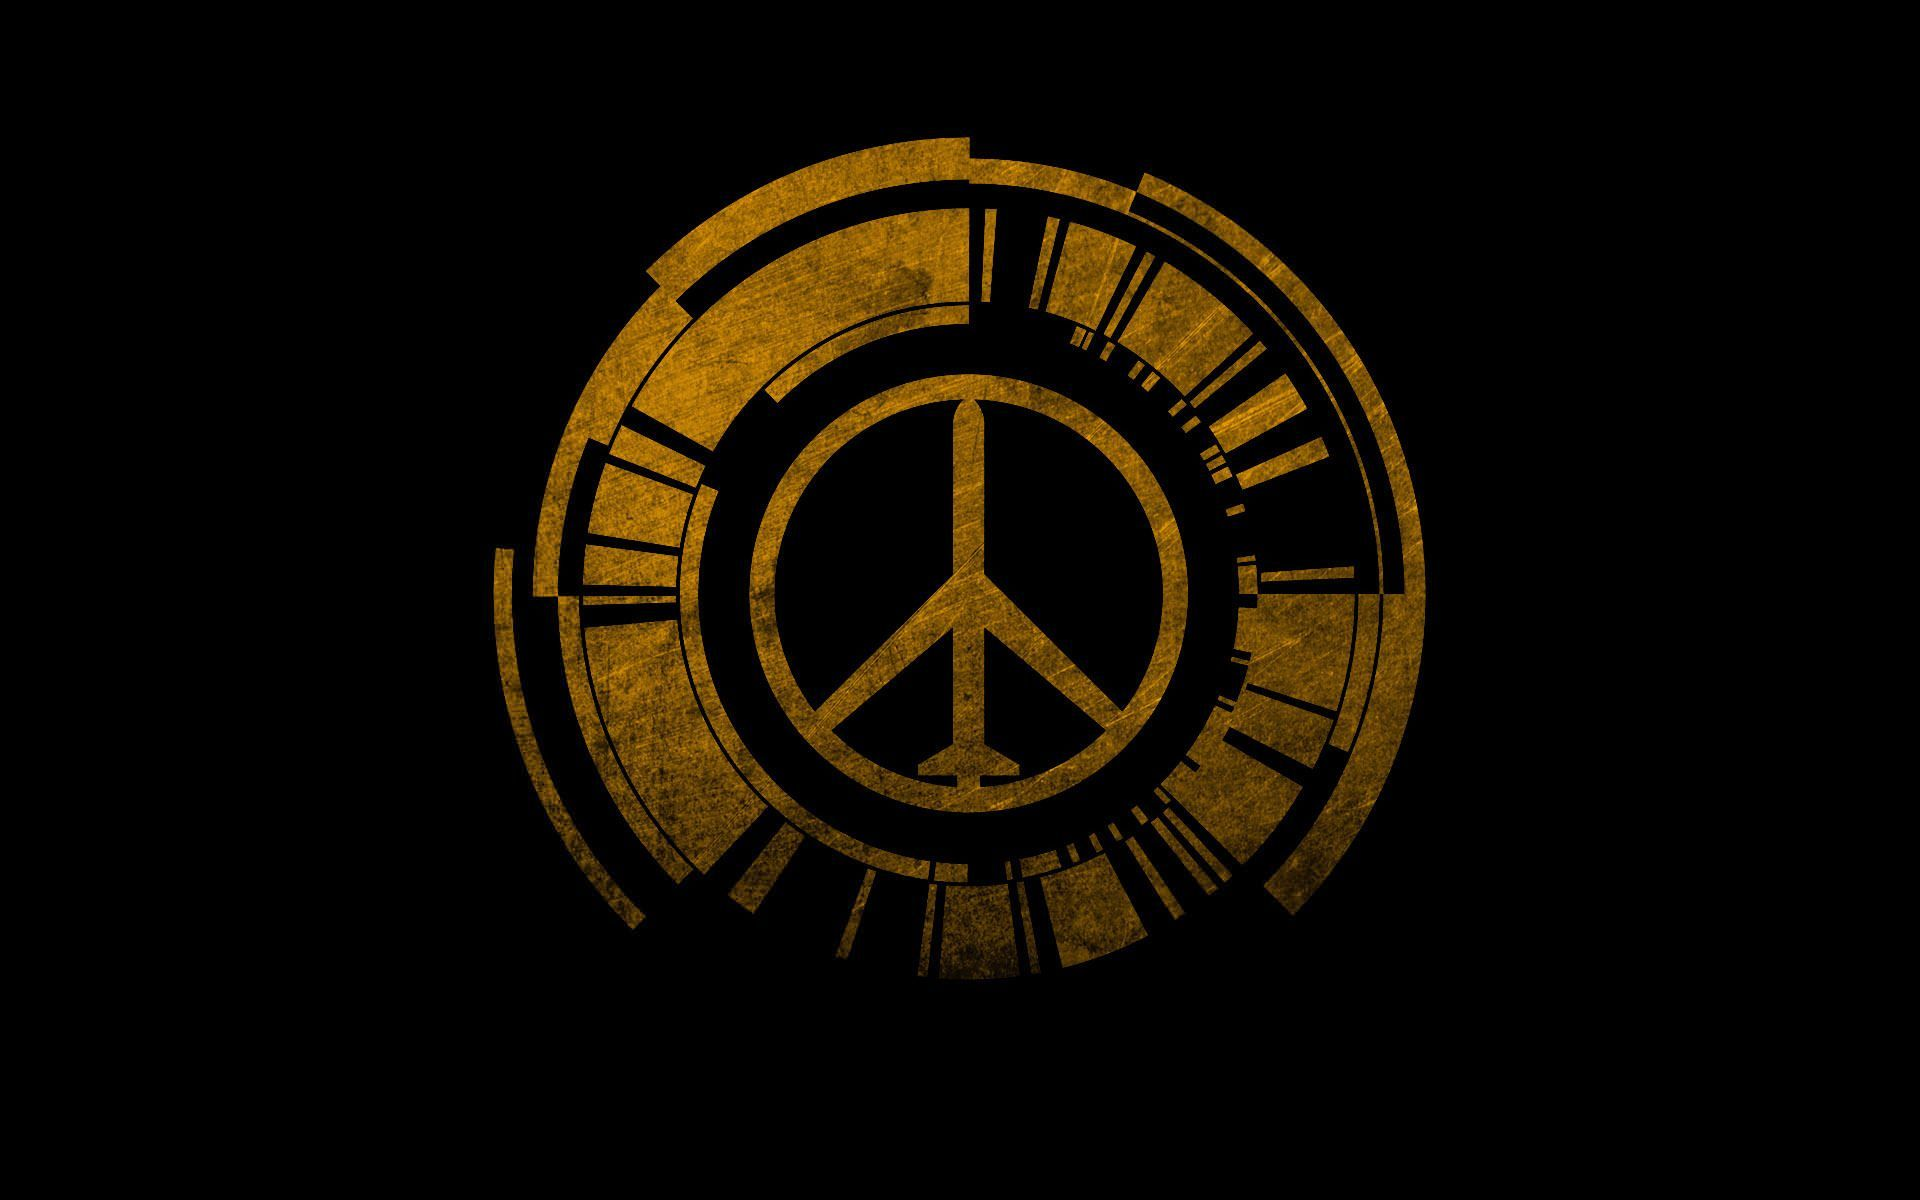 Searching for Peace Wallpapers in HD quality? Well we have